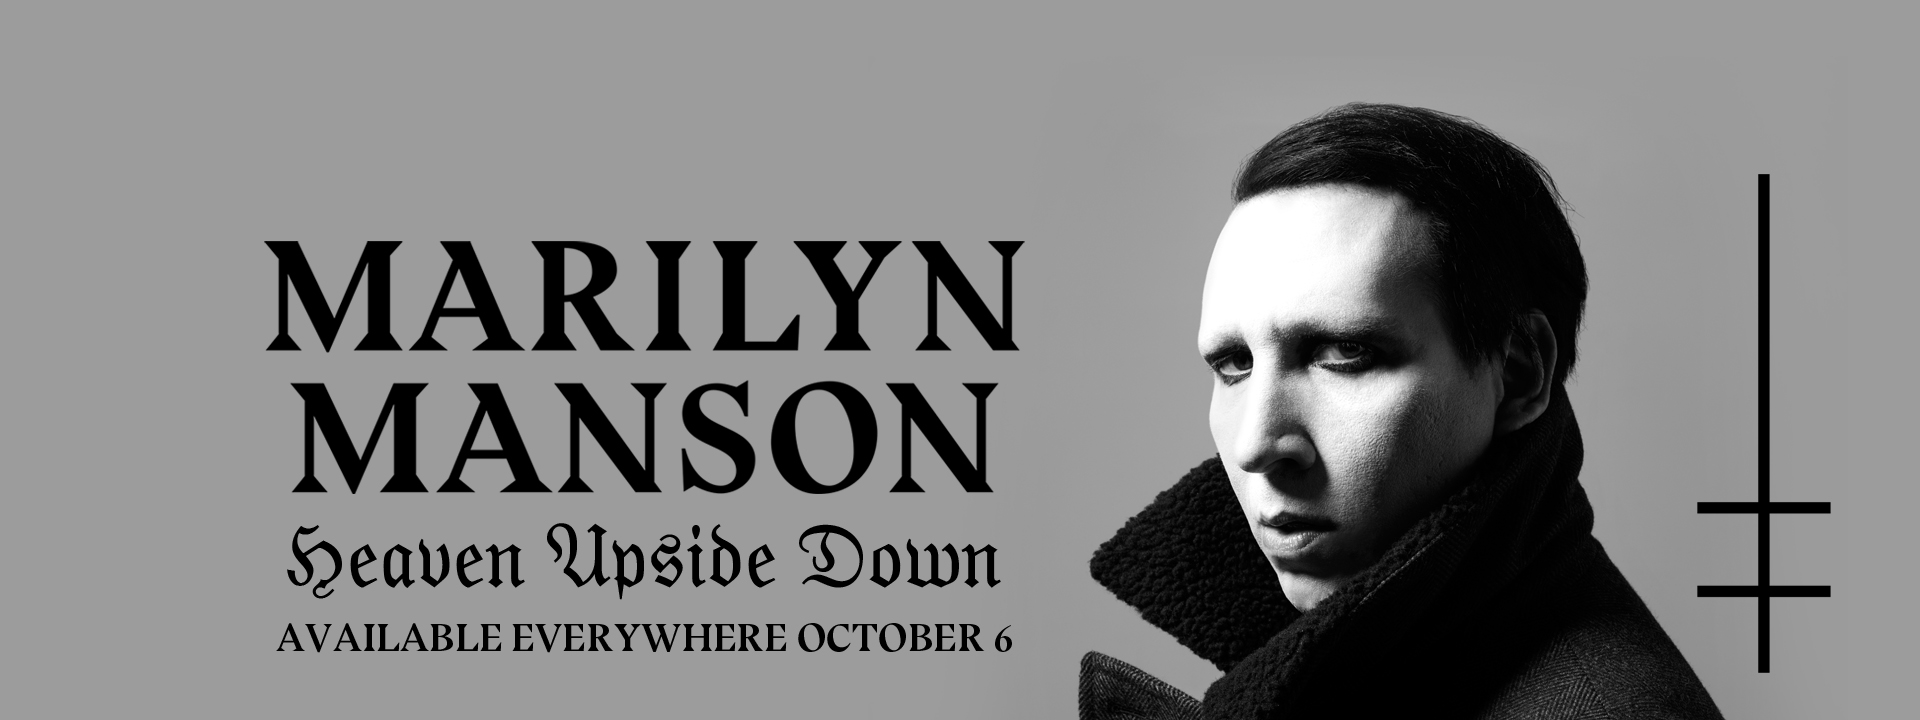 NEWS: Marilyn Manson Cancels Nine Shows After NYC Stage Injury